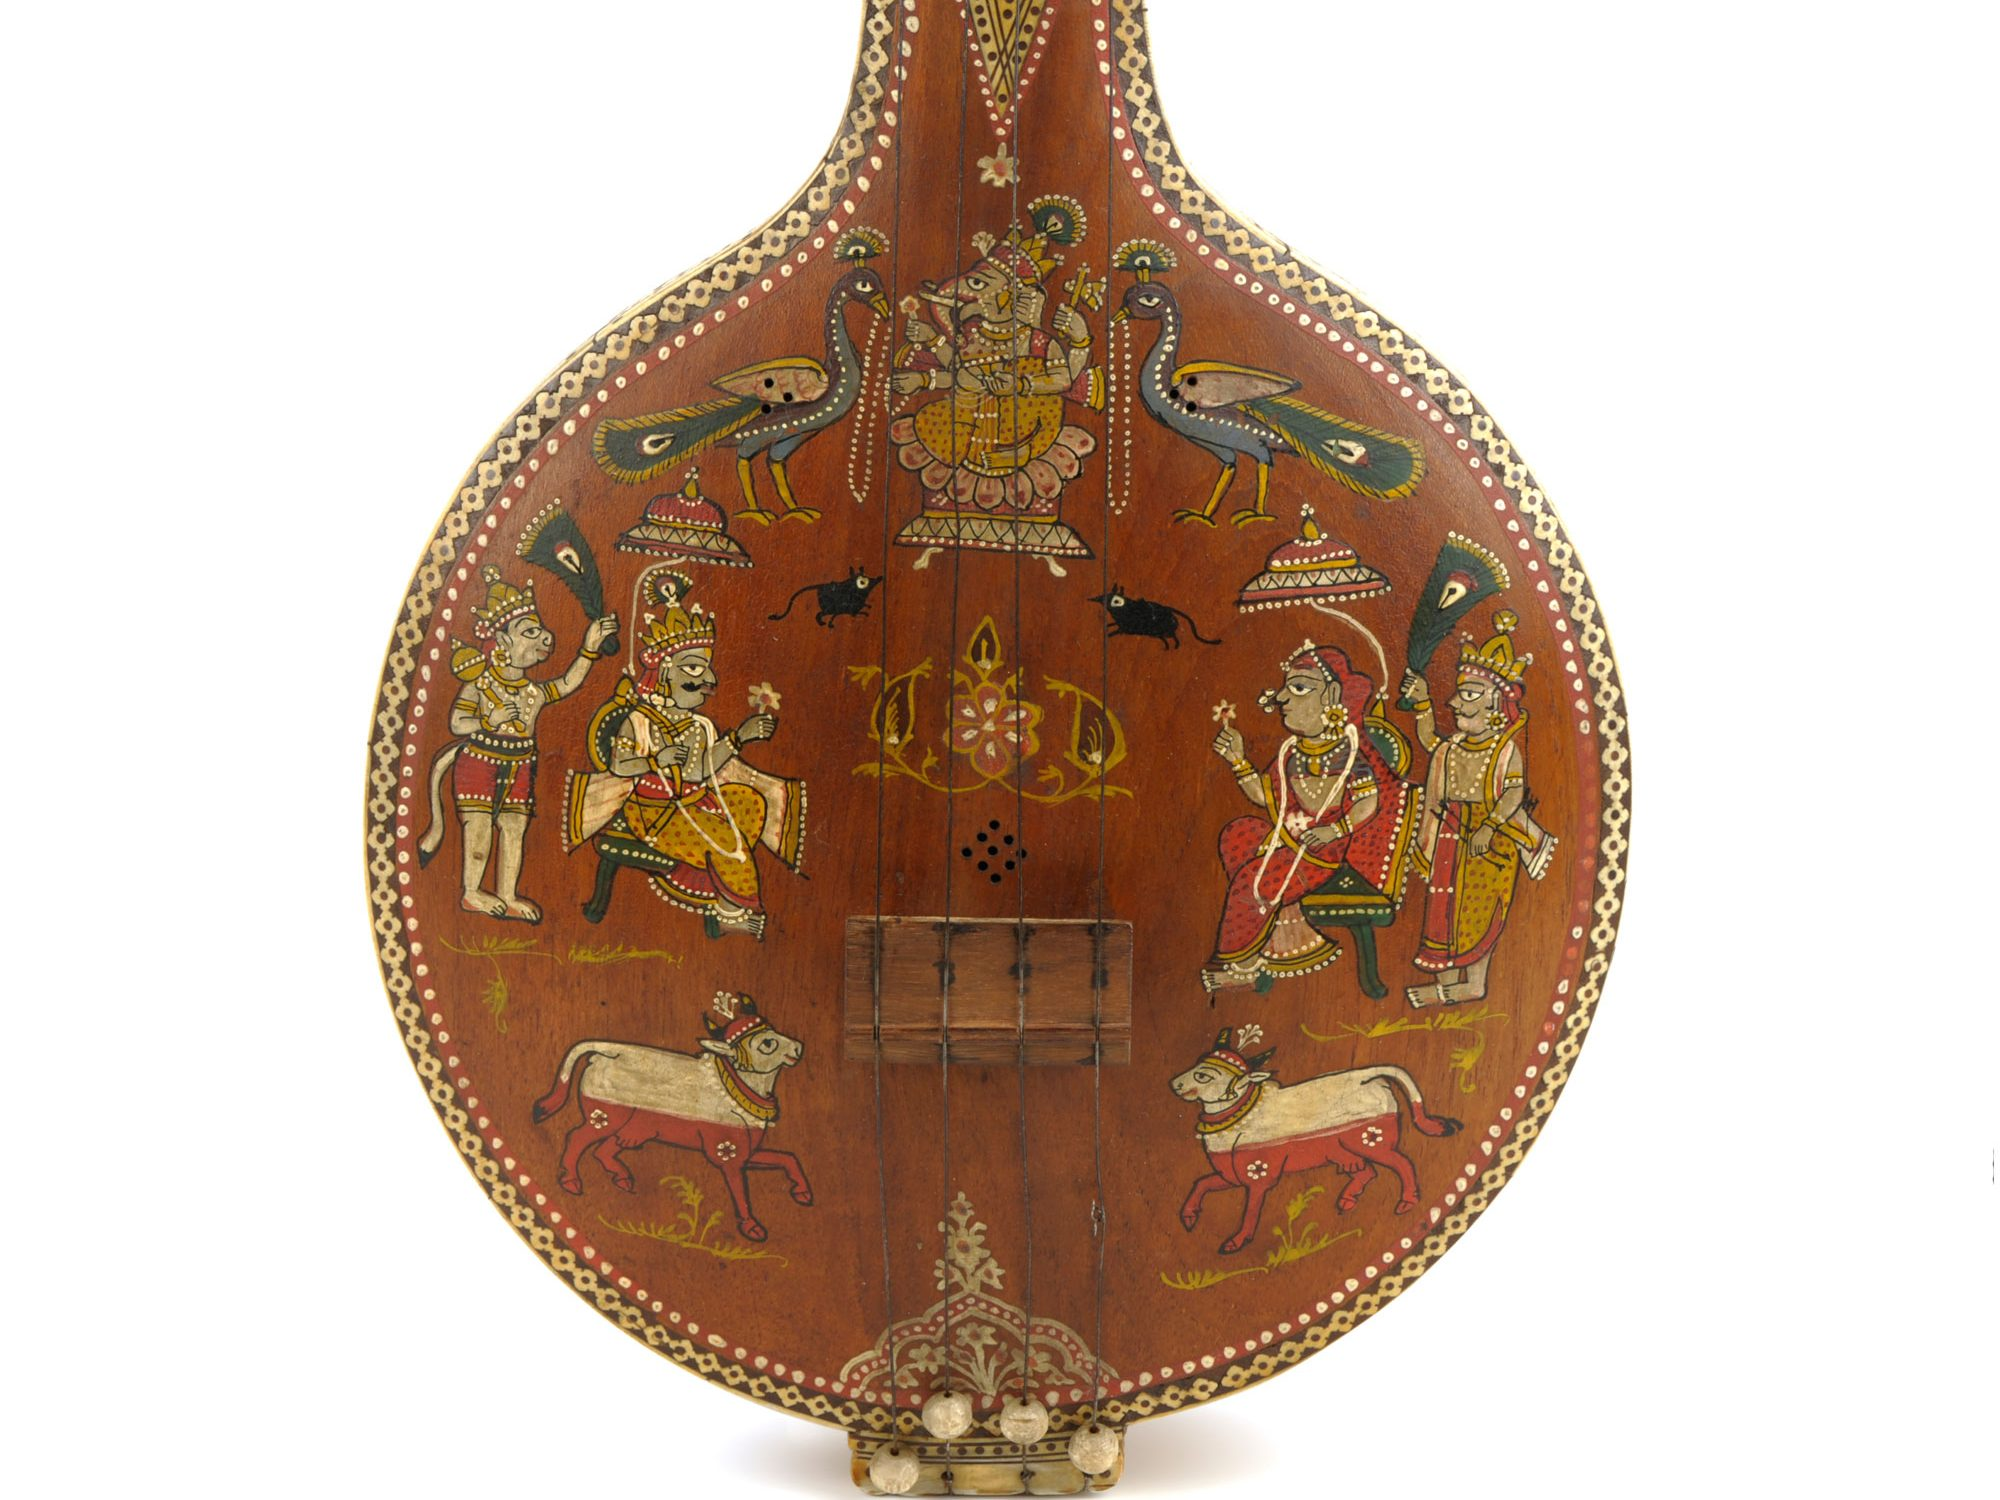 A close up of the base of a wooden stringed instrument. The base is round with lots of inlaid decorations showing people and birds around the strings